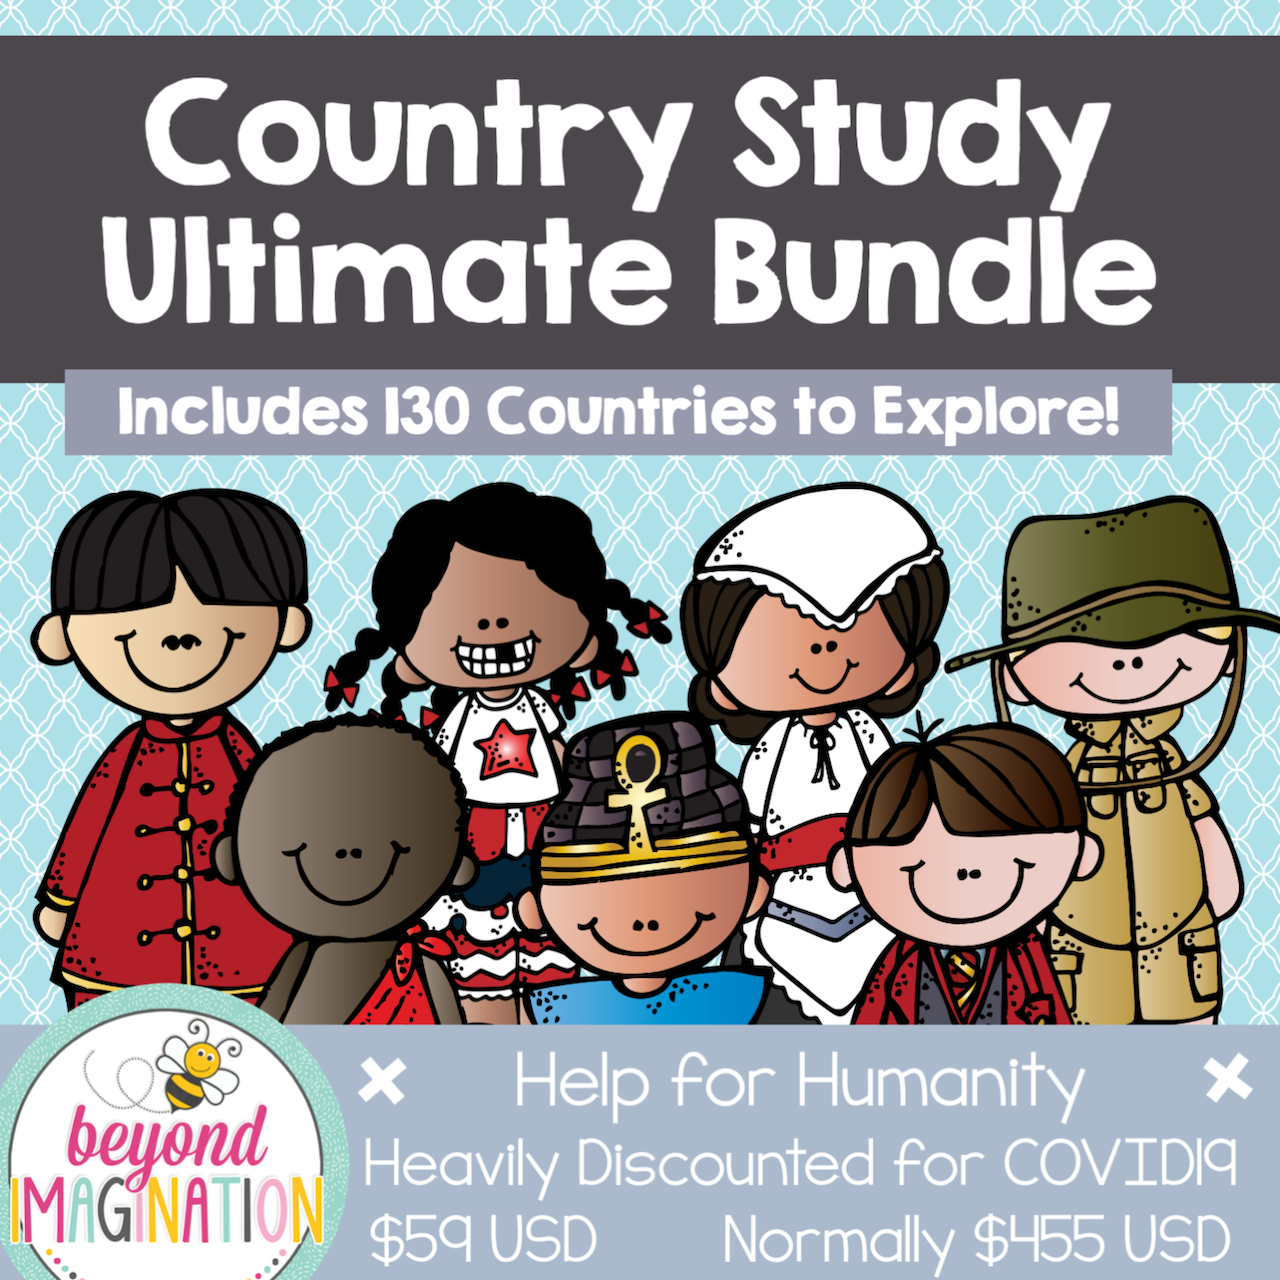 Ultimate Country Study Bundle Help for Humanity COVID-19